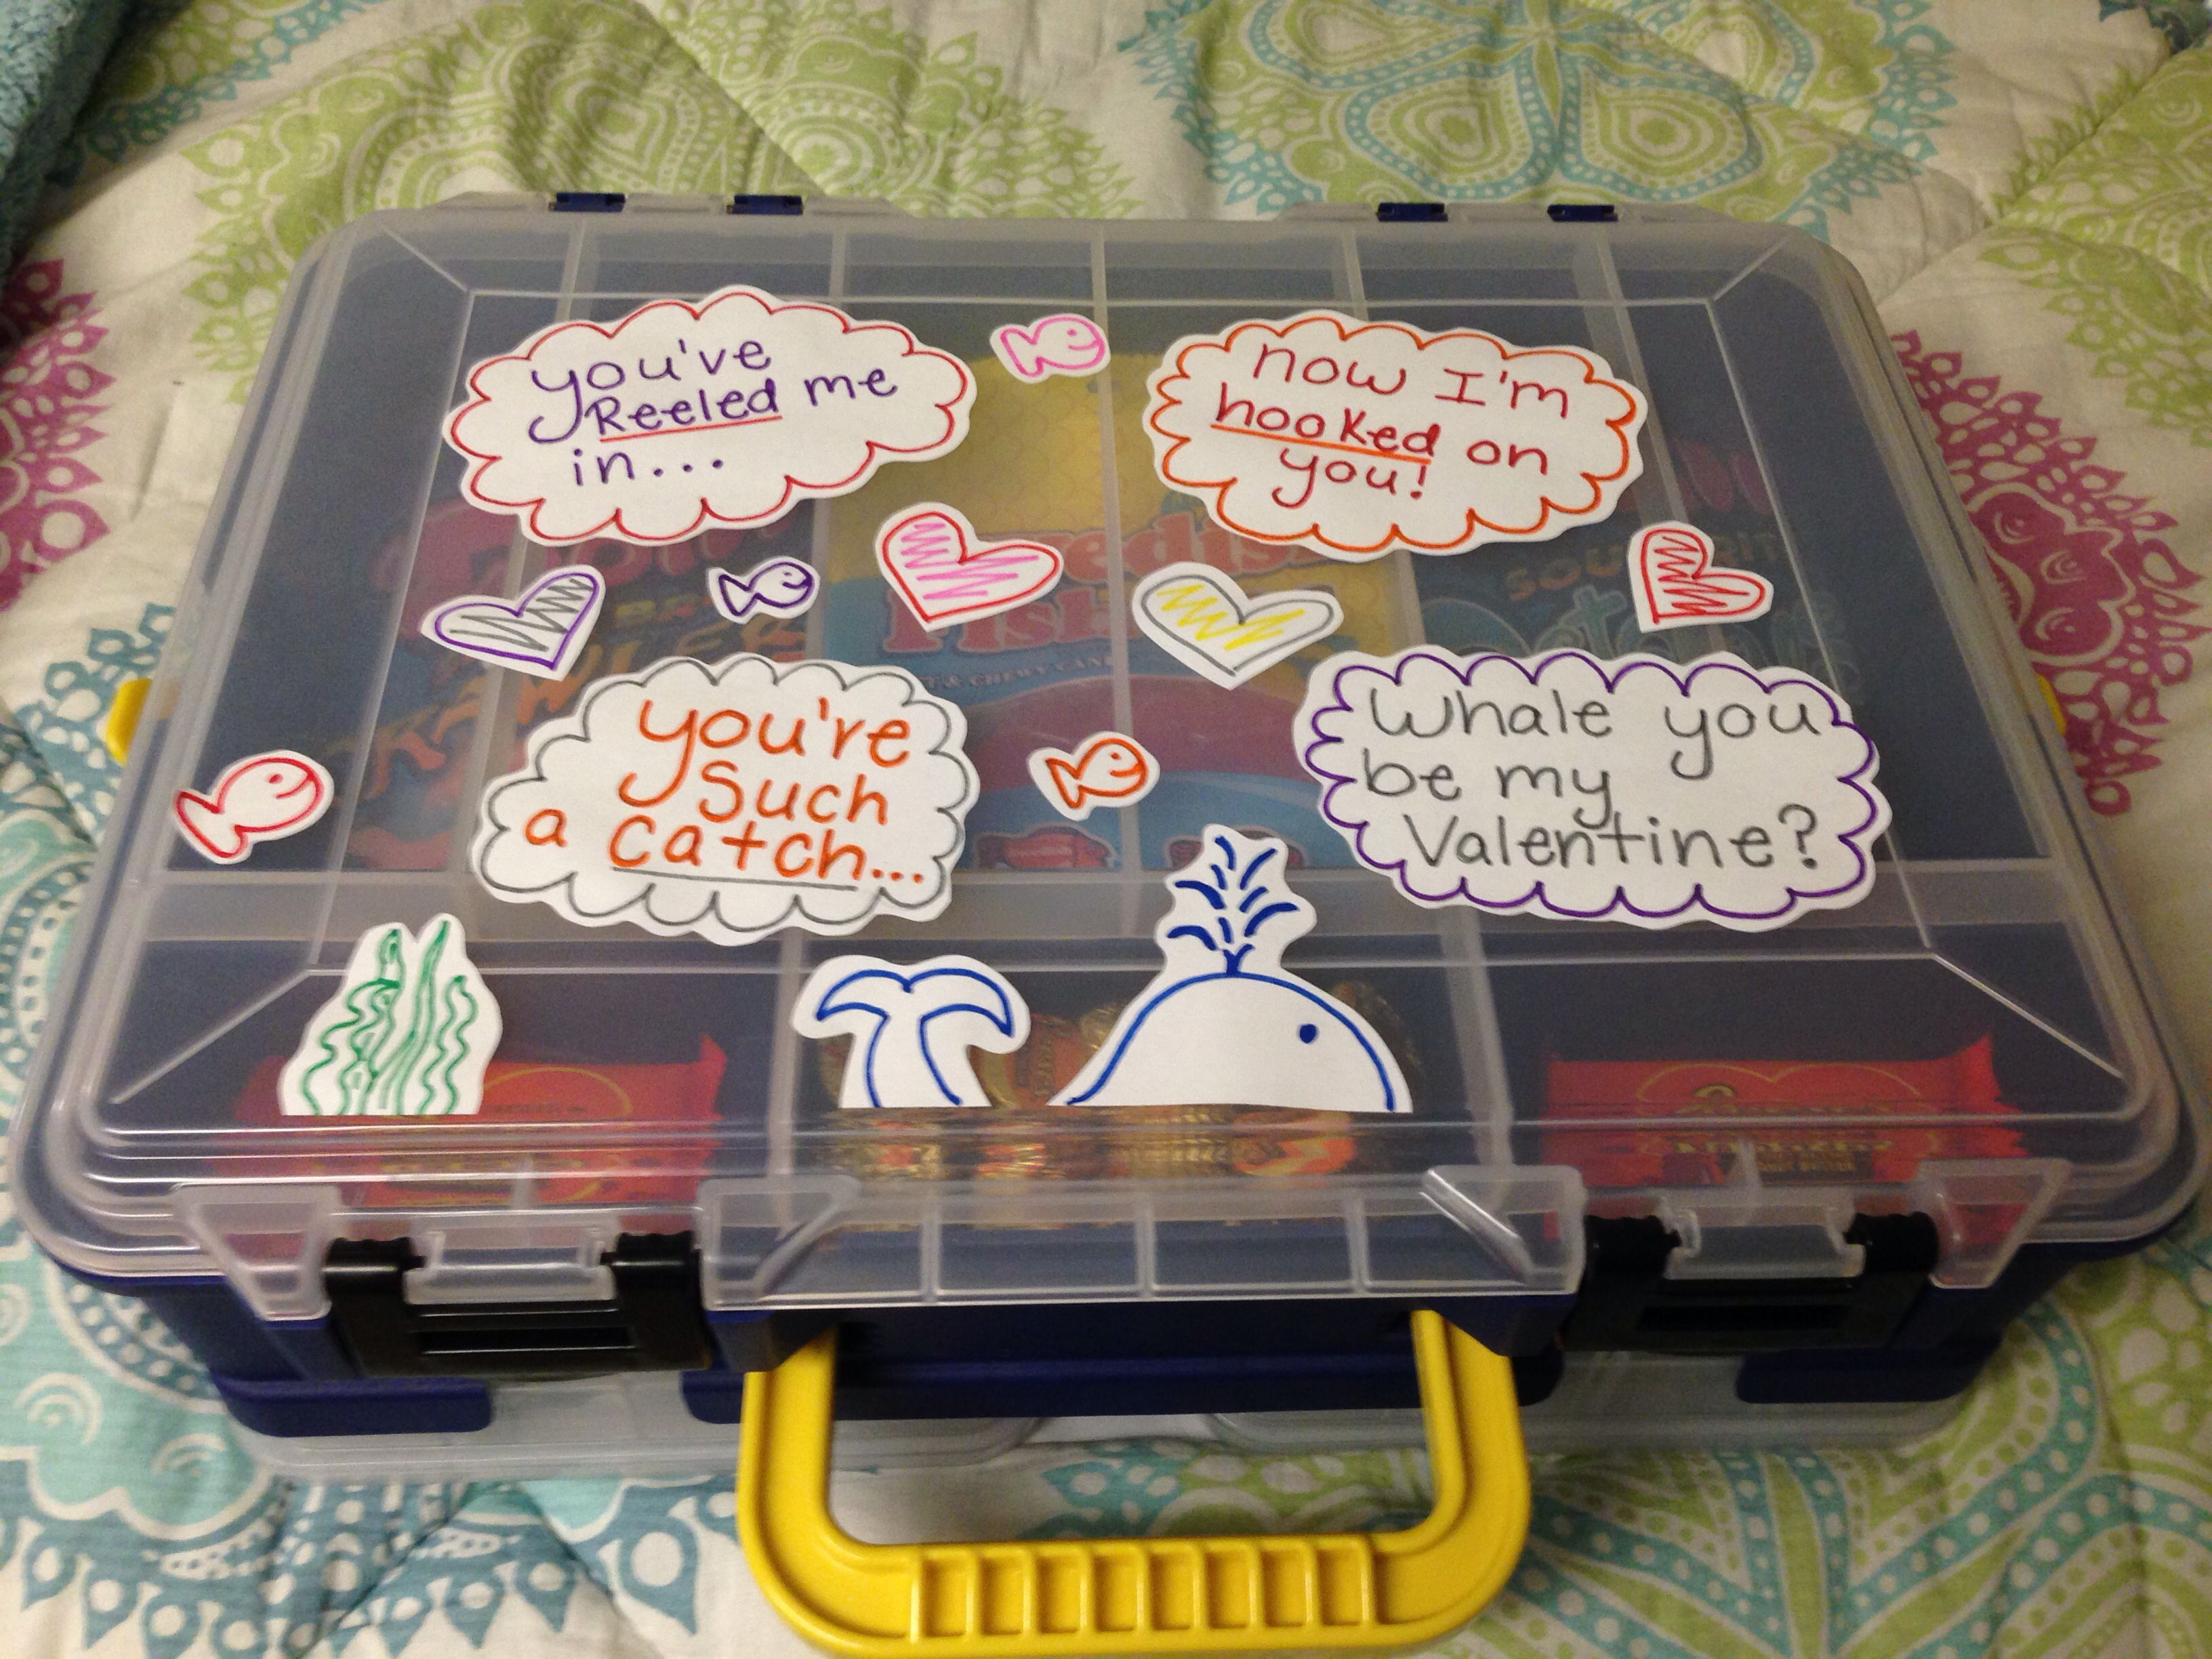 Tackle Box Valentines Day Present for men!